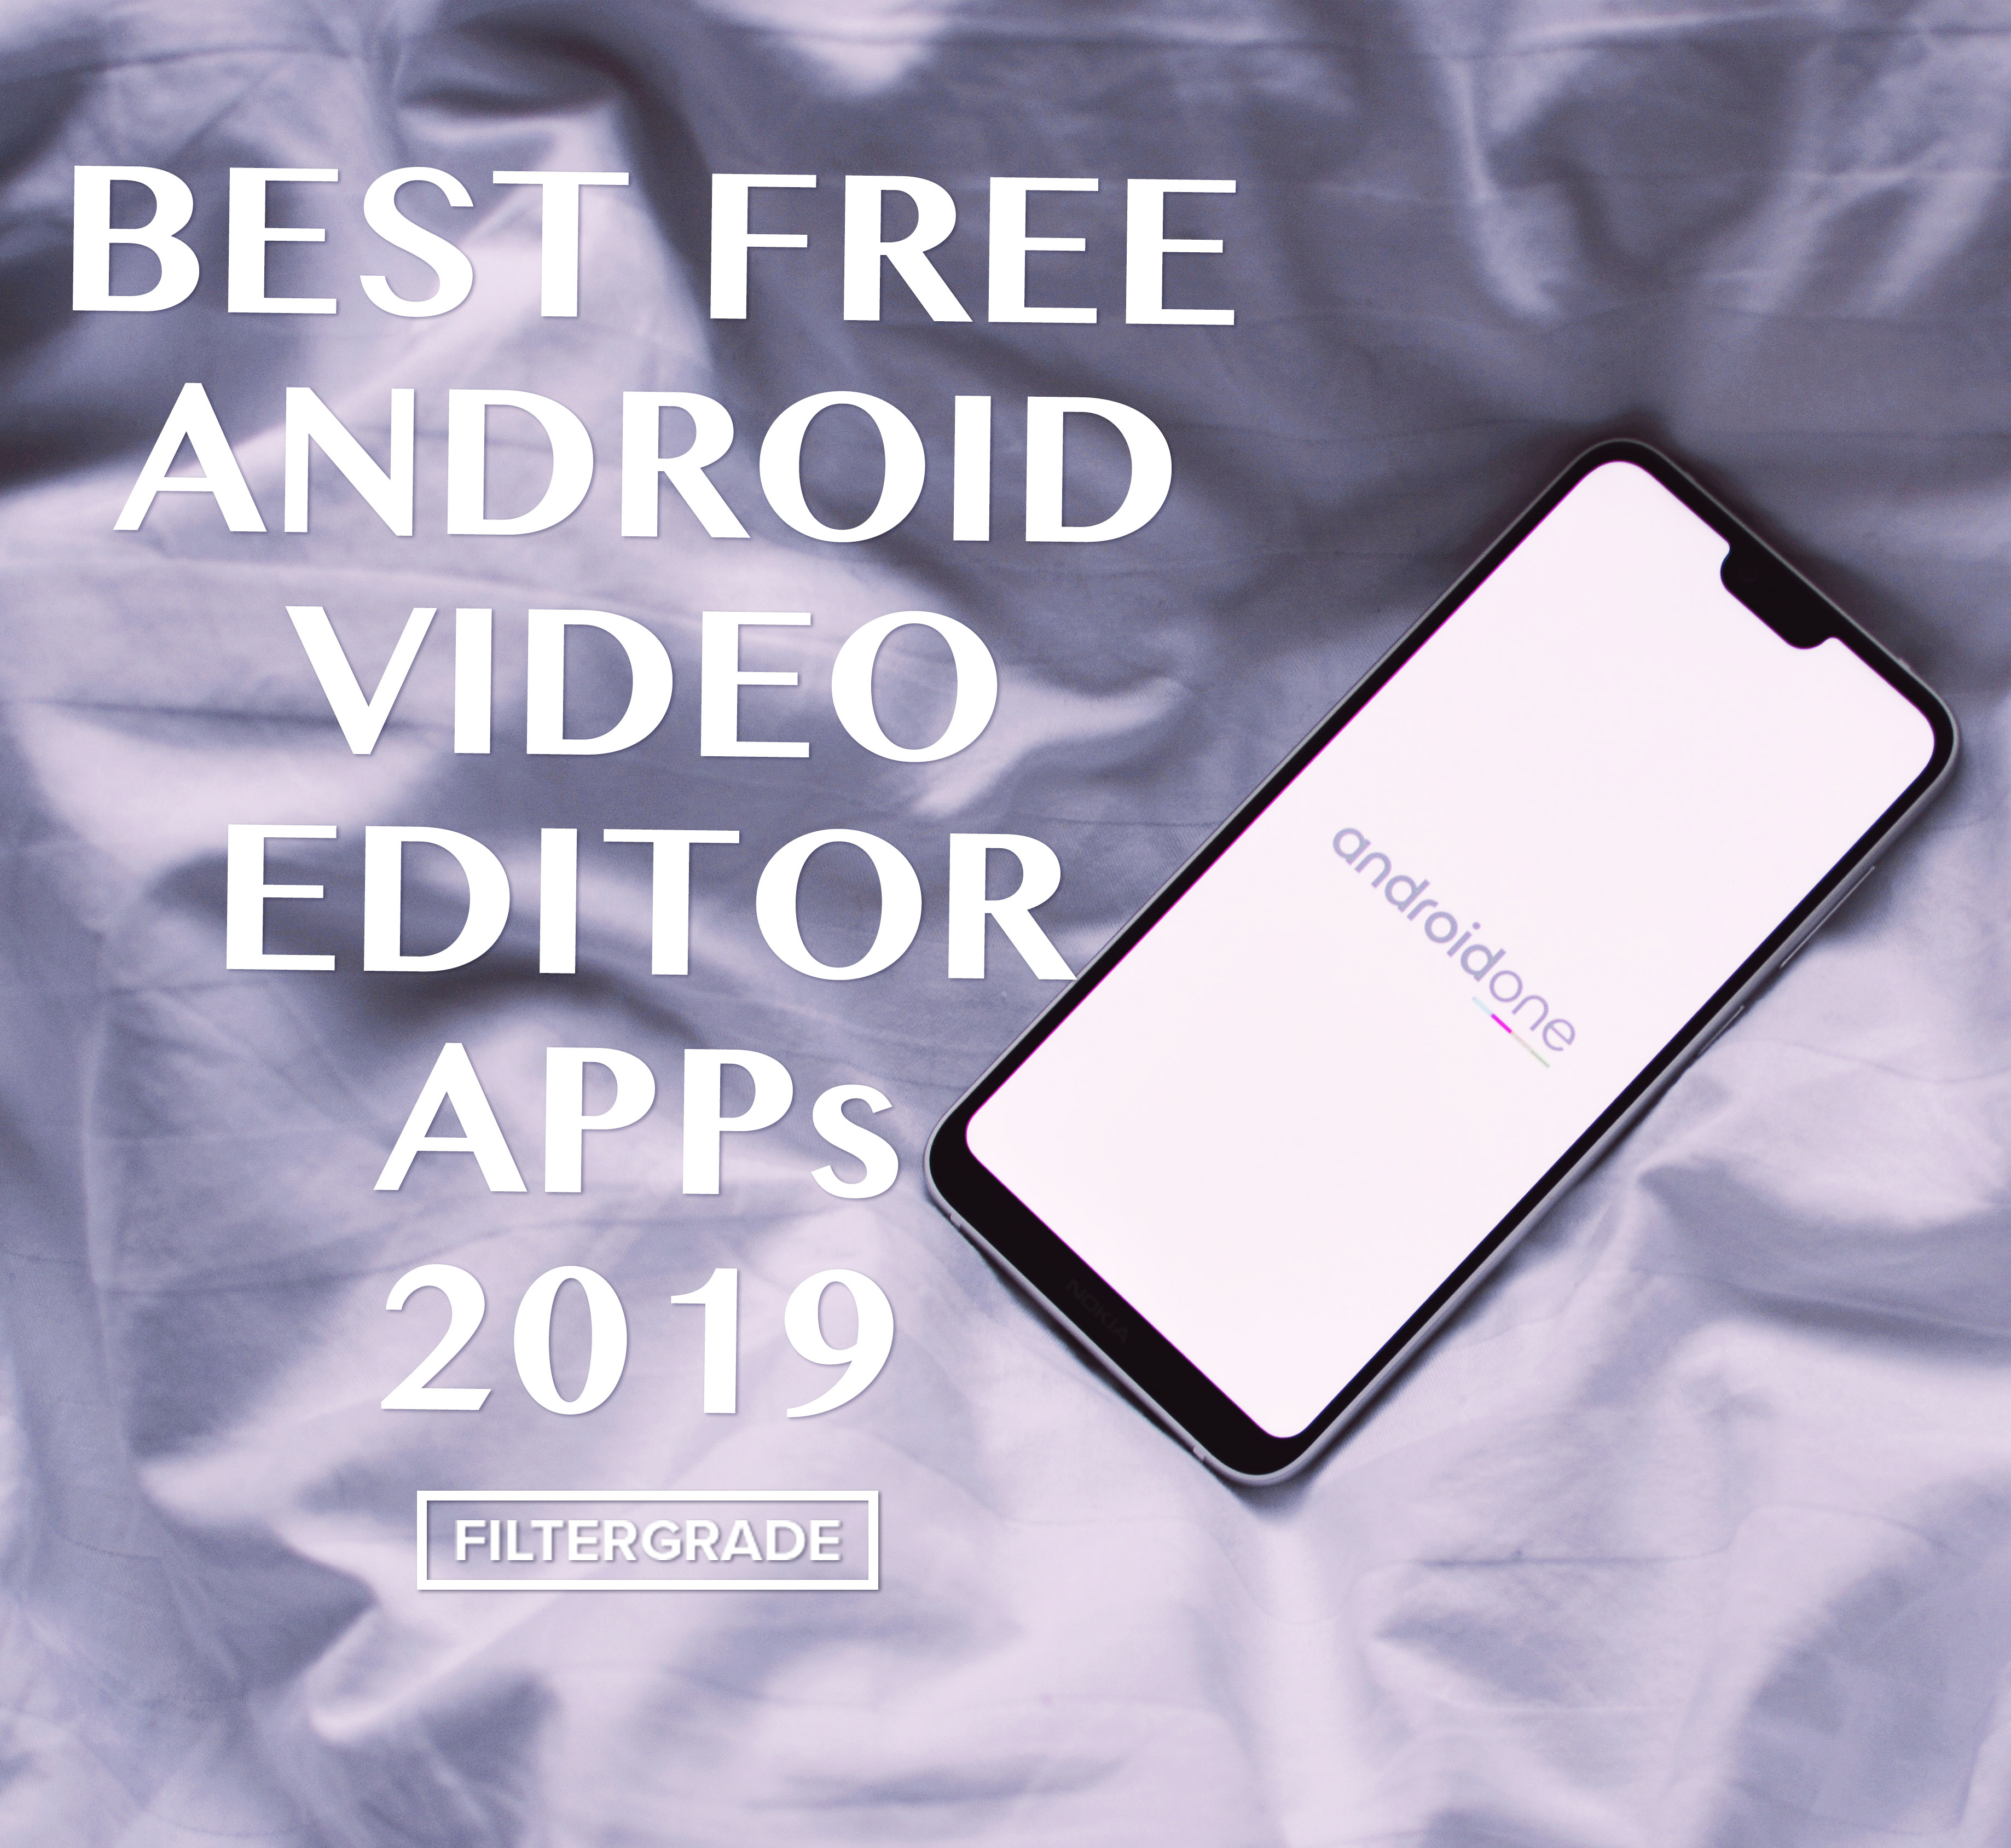 Best FREE Android Video Editor Apps 2019 - FilterGrade